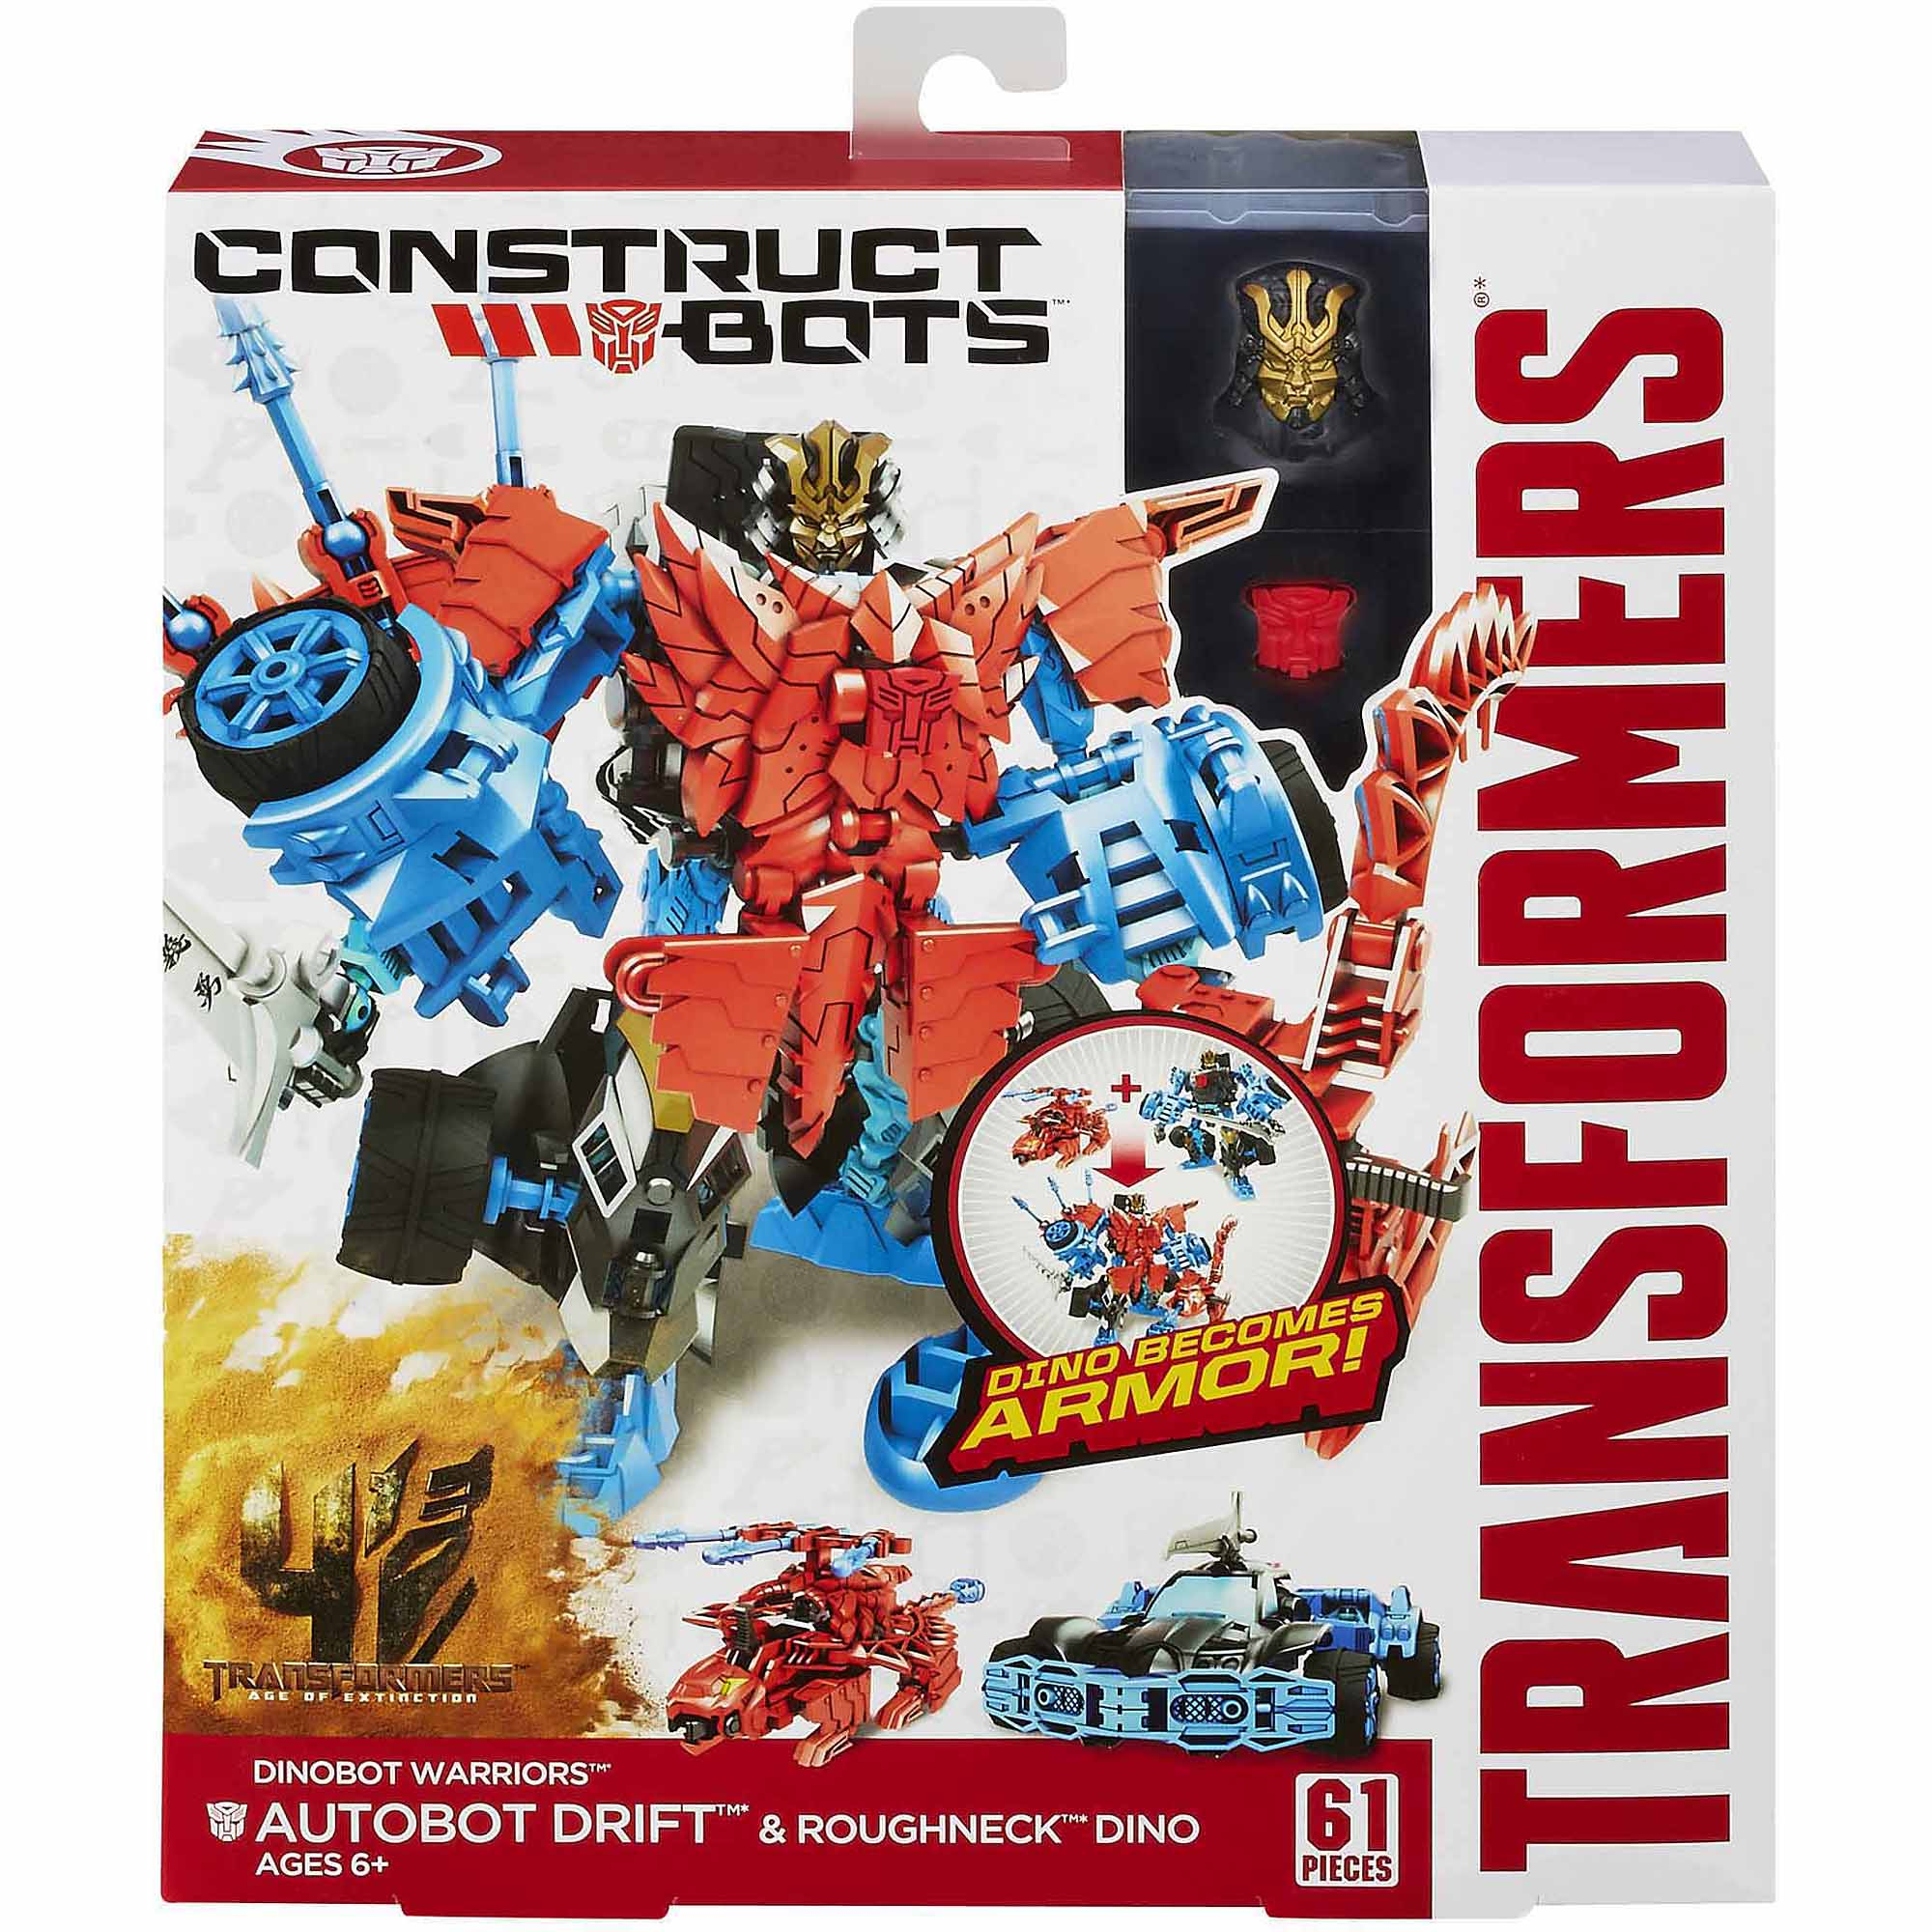 Transformers Age of Extinction Construct-Bots Dinobot Warriors Autobot Drift and Roughneck Dino Buildable Action Figures